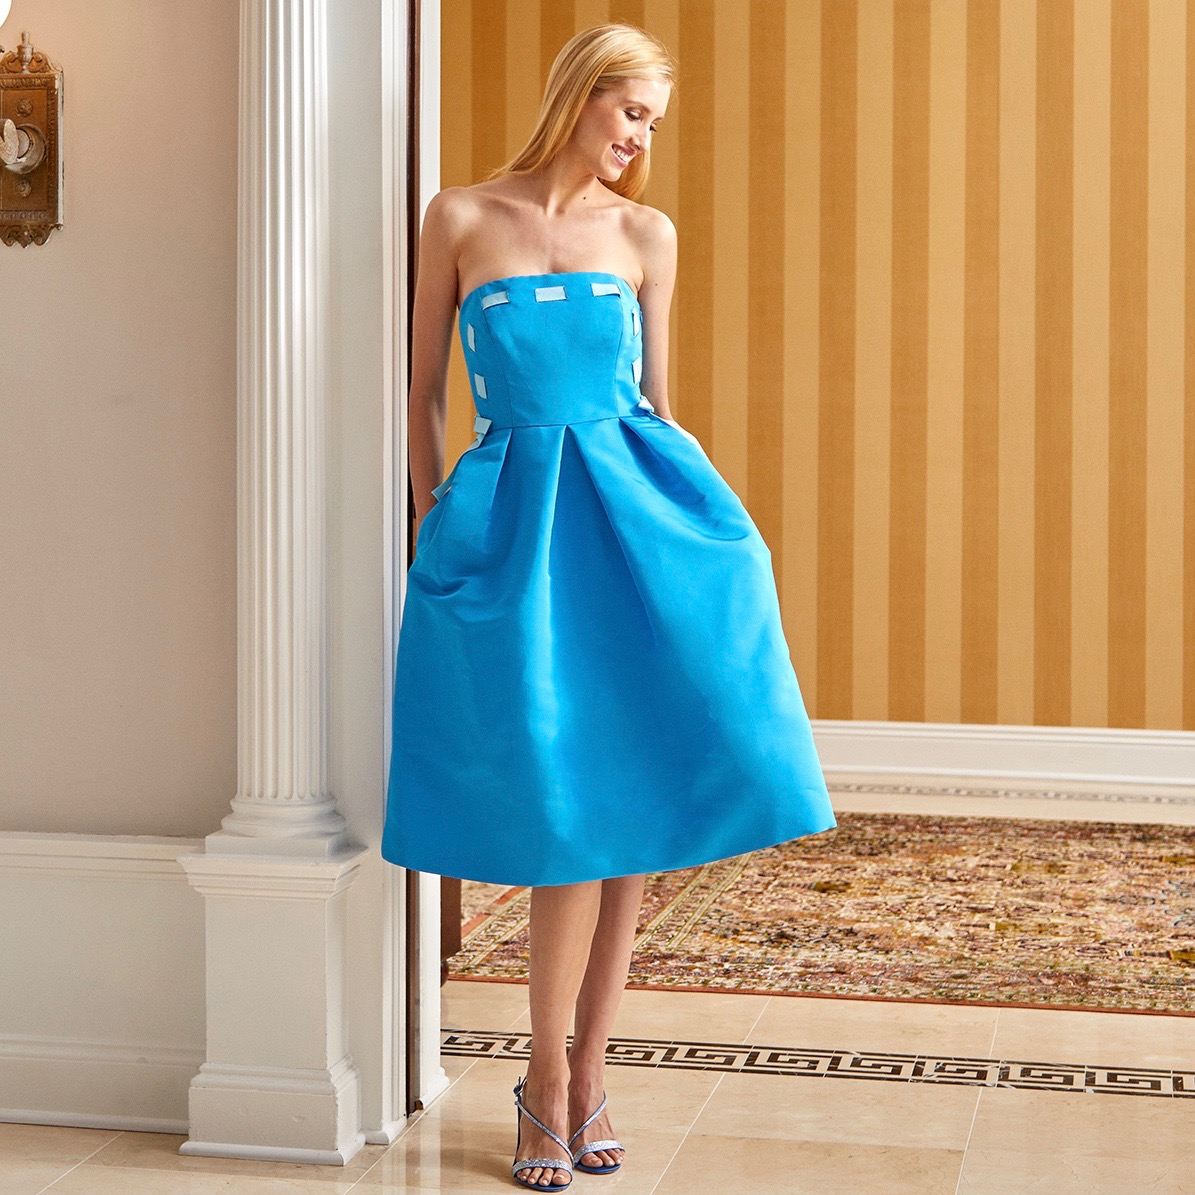 Model wearing strapless blue silk faille cocktail dress with light blue woven ribbon detail standing